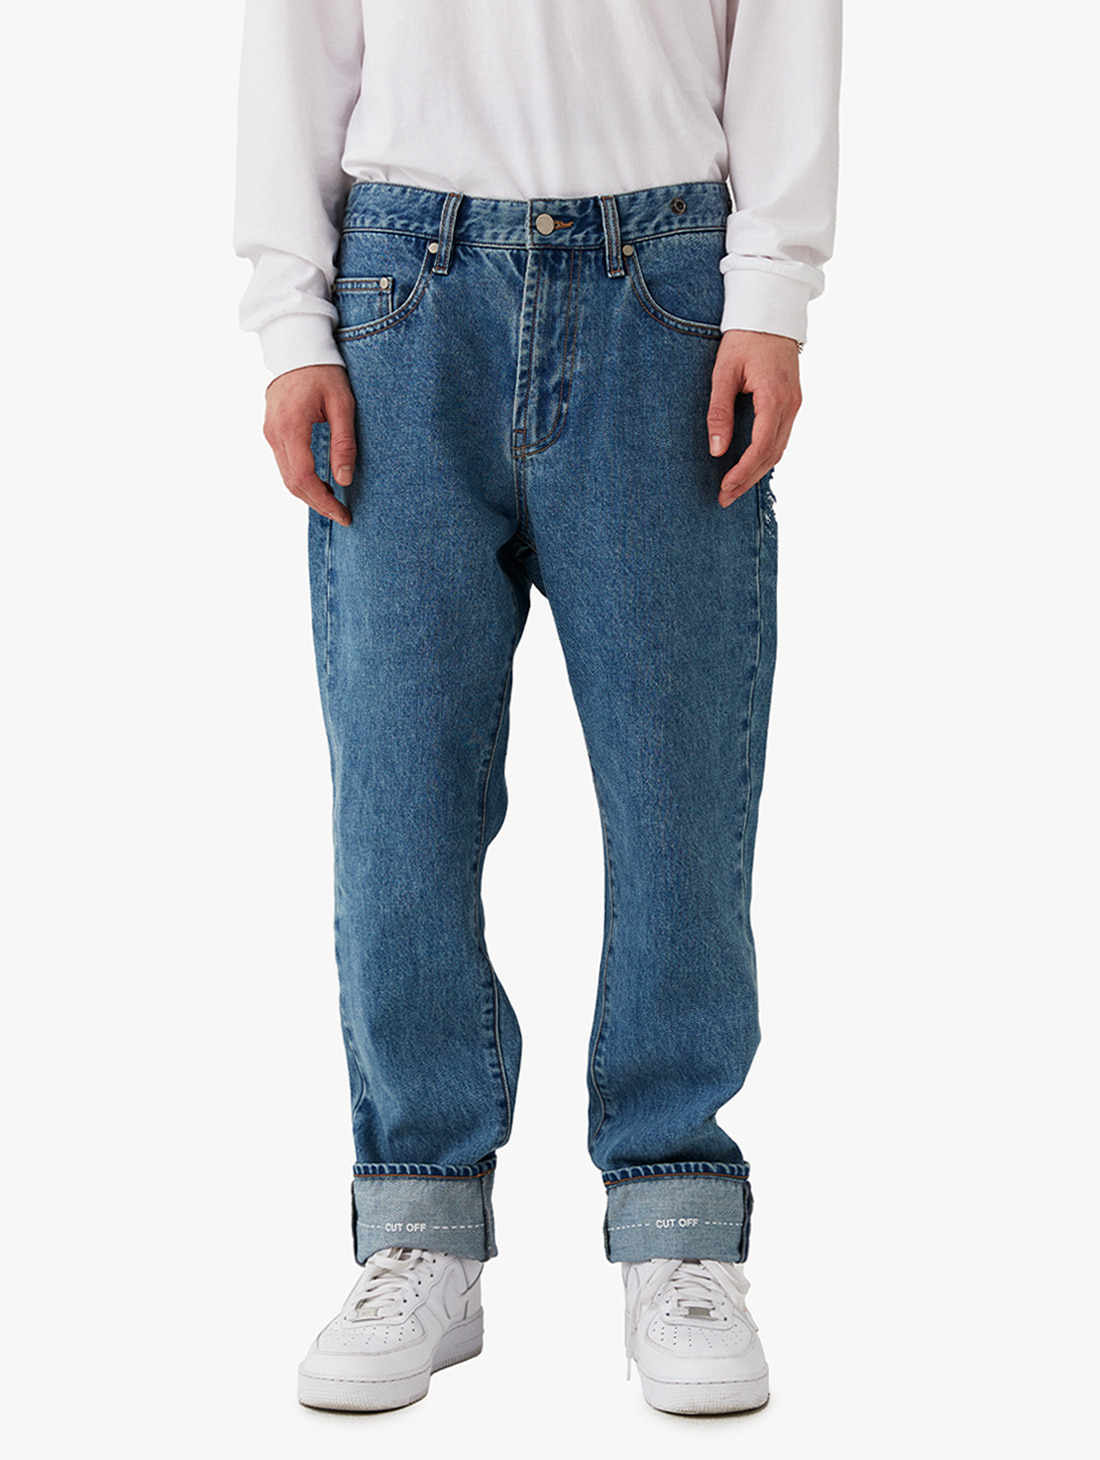 GOALSTUDIO STRAIGHT DENIM PANTS (2 Colors)